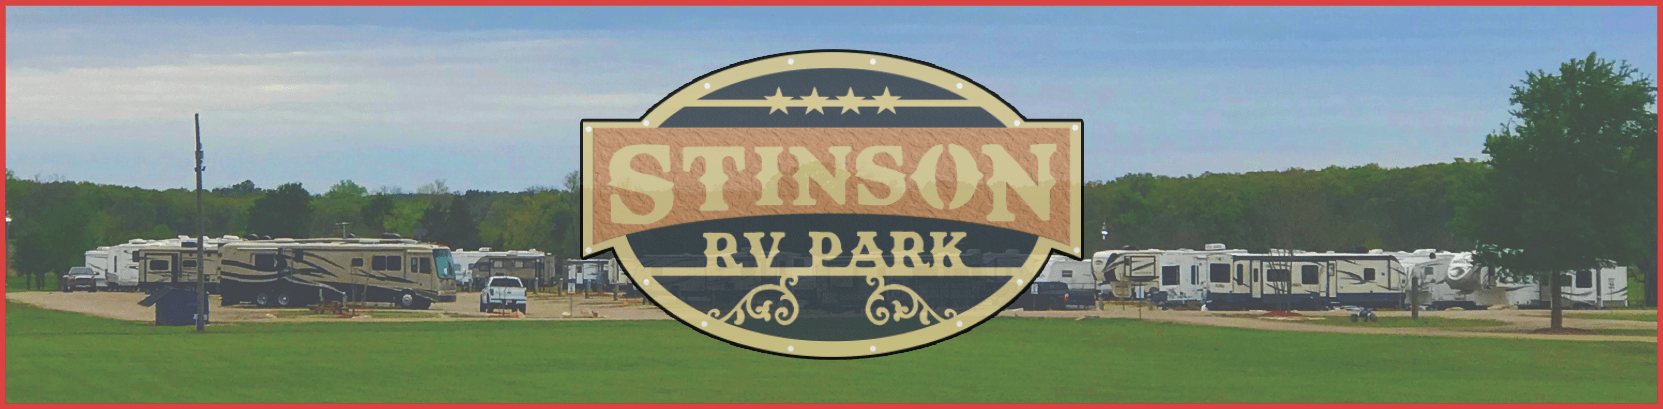 Stinson RV Park & Resort